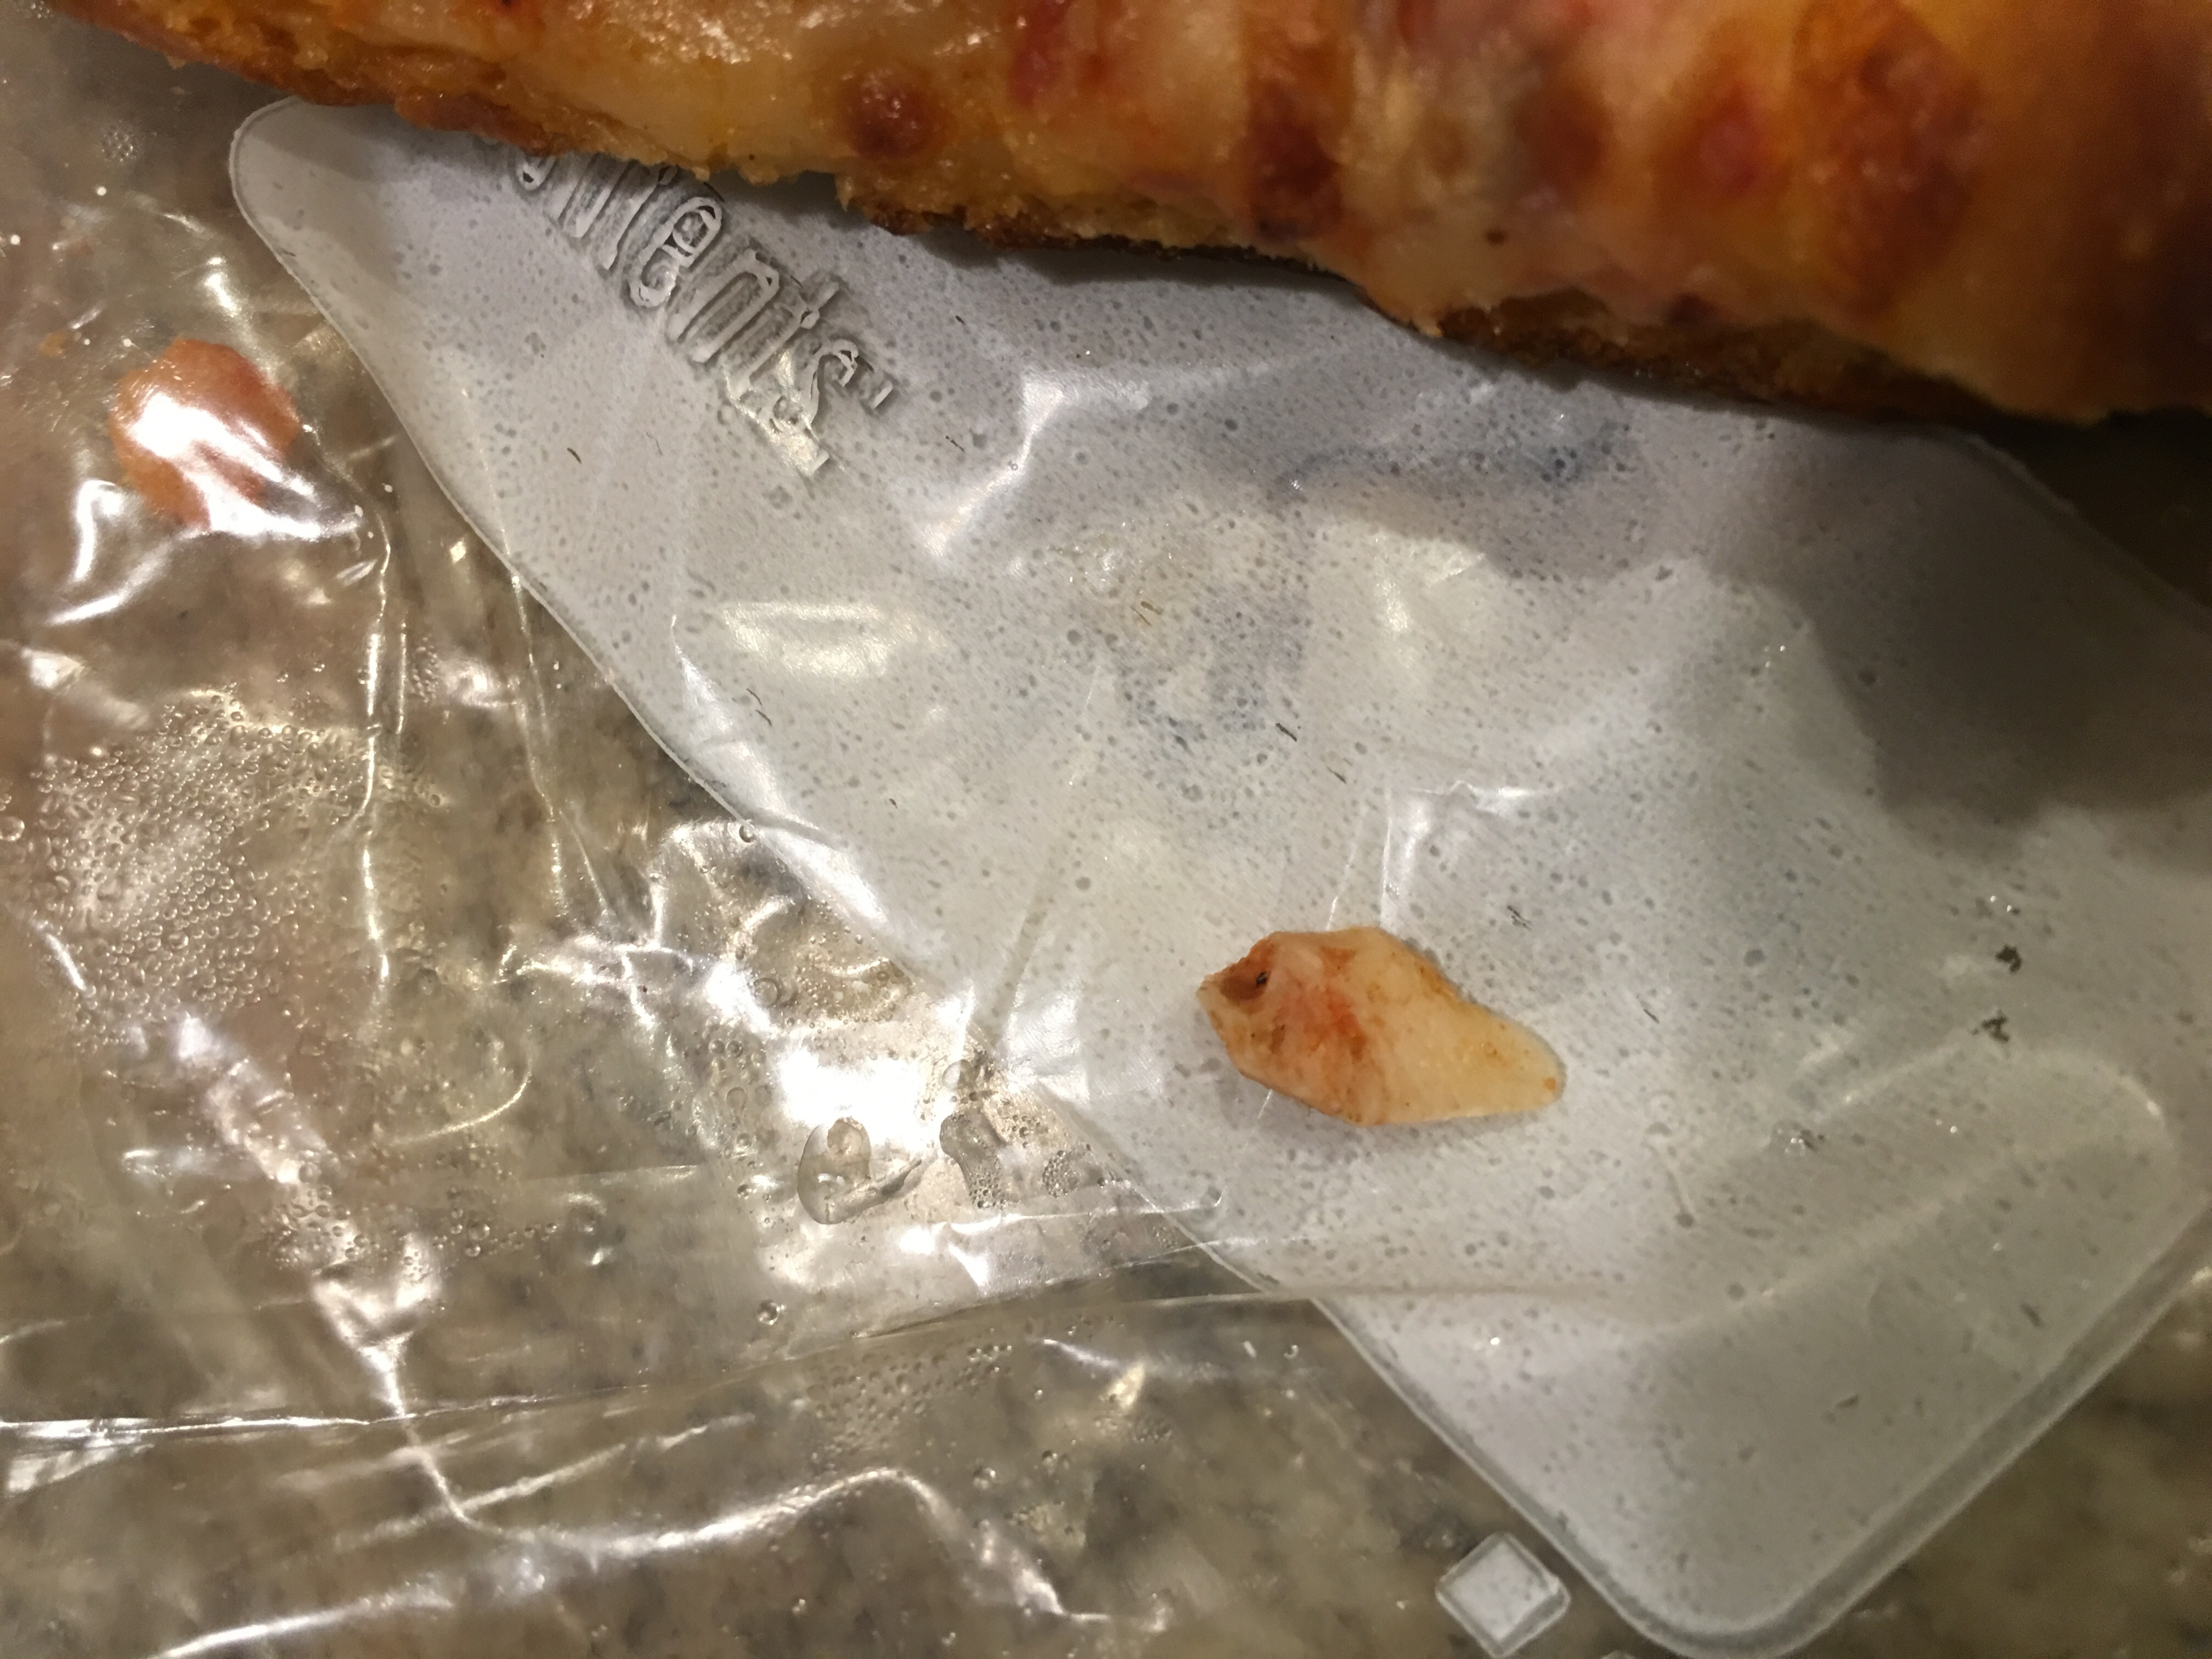 papa john s customer service complaints department hissingkitty com chewing my pizza and this is what was in it thought i was going to be sick looks like a tooth but can t be sure it s gross no matter what it is